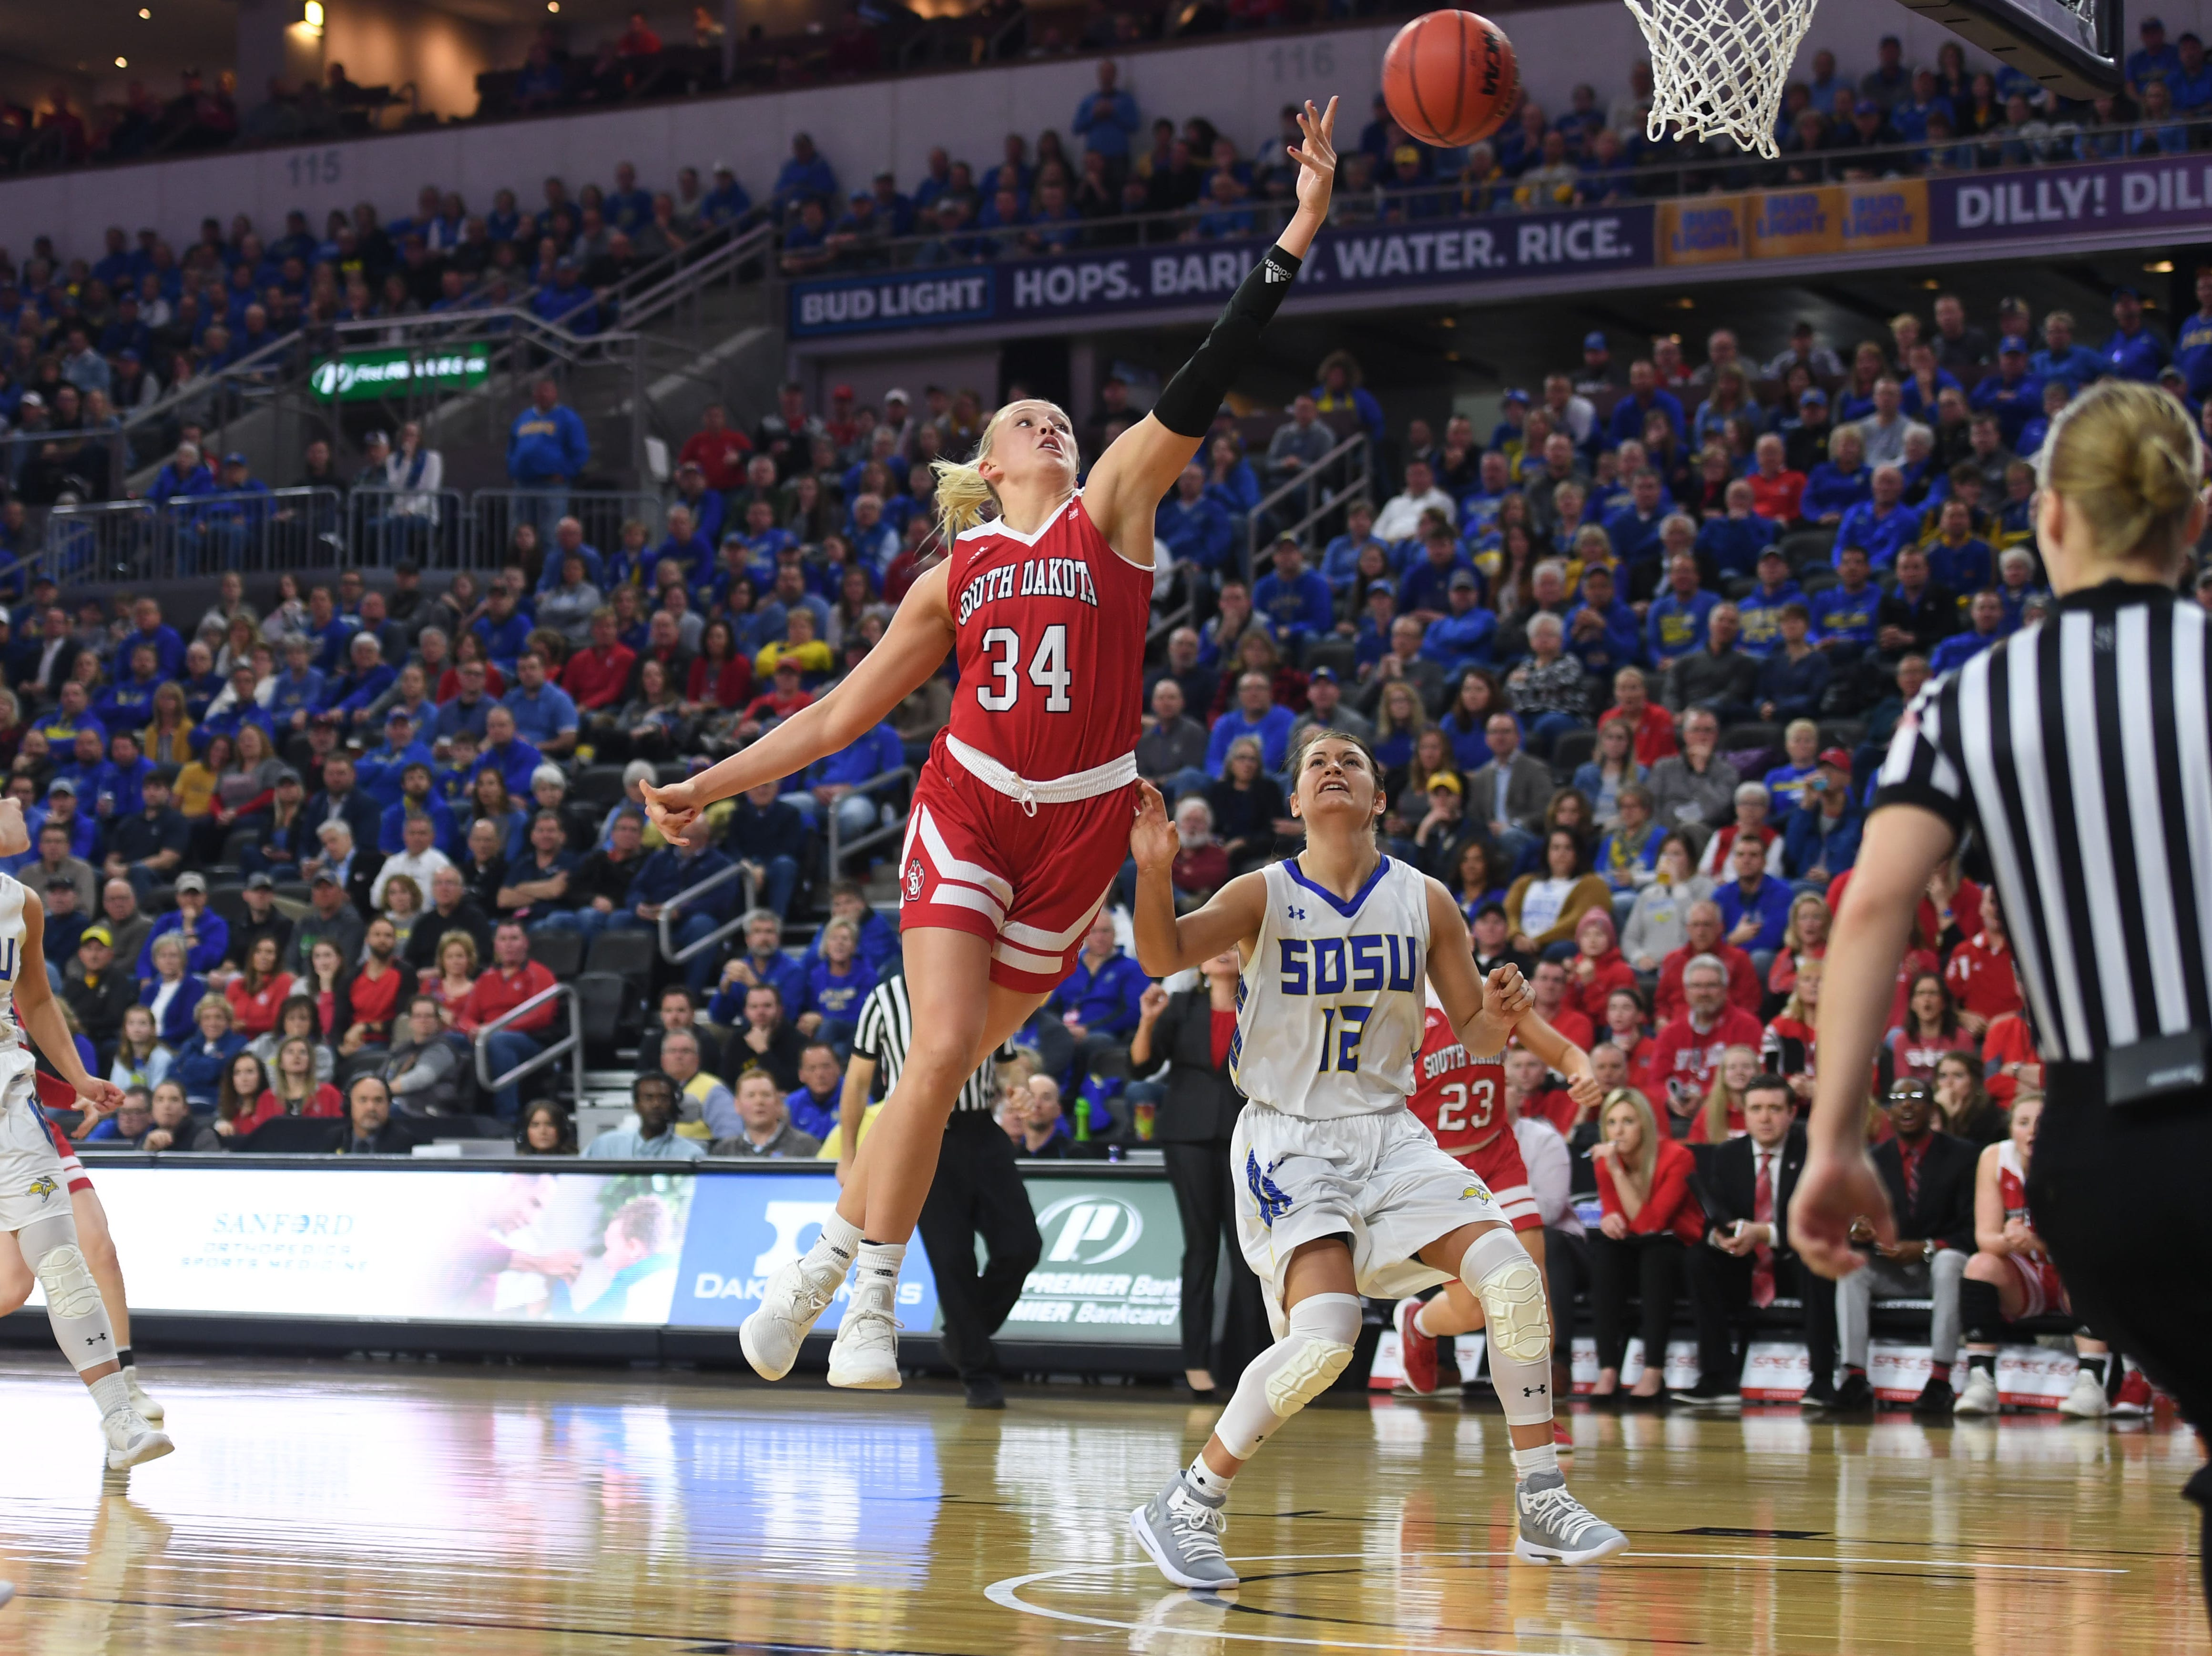 USD's Hannah Sjerven goes against SDSU defense during the game Tuesday, March 12, in the Summit League women's championship at the Denny Sanford Premier Center in Sioux Falls.